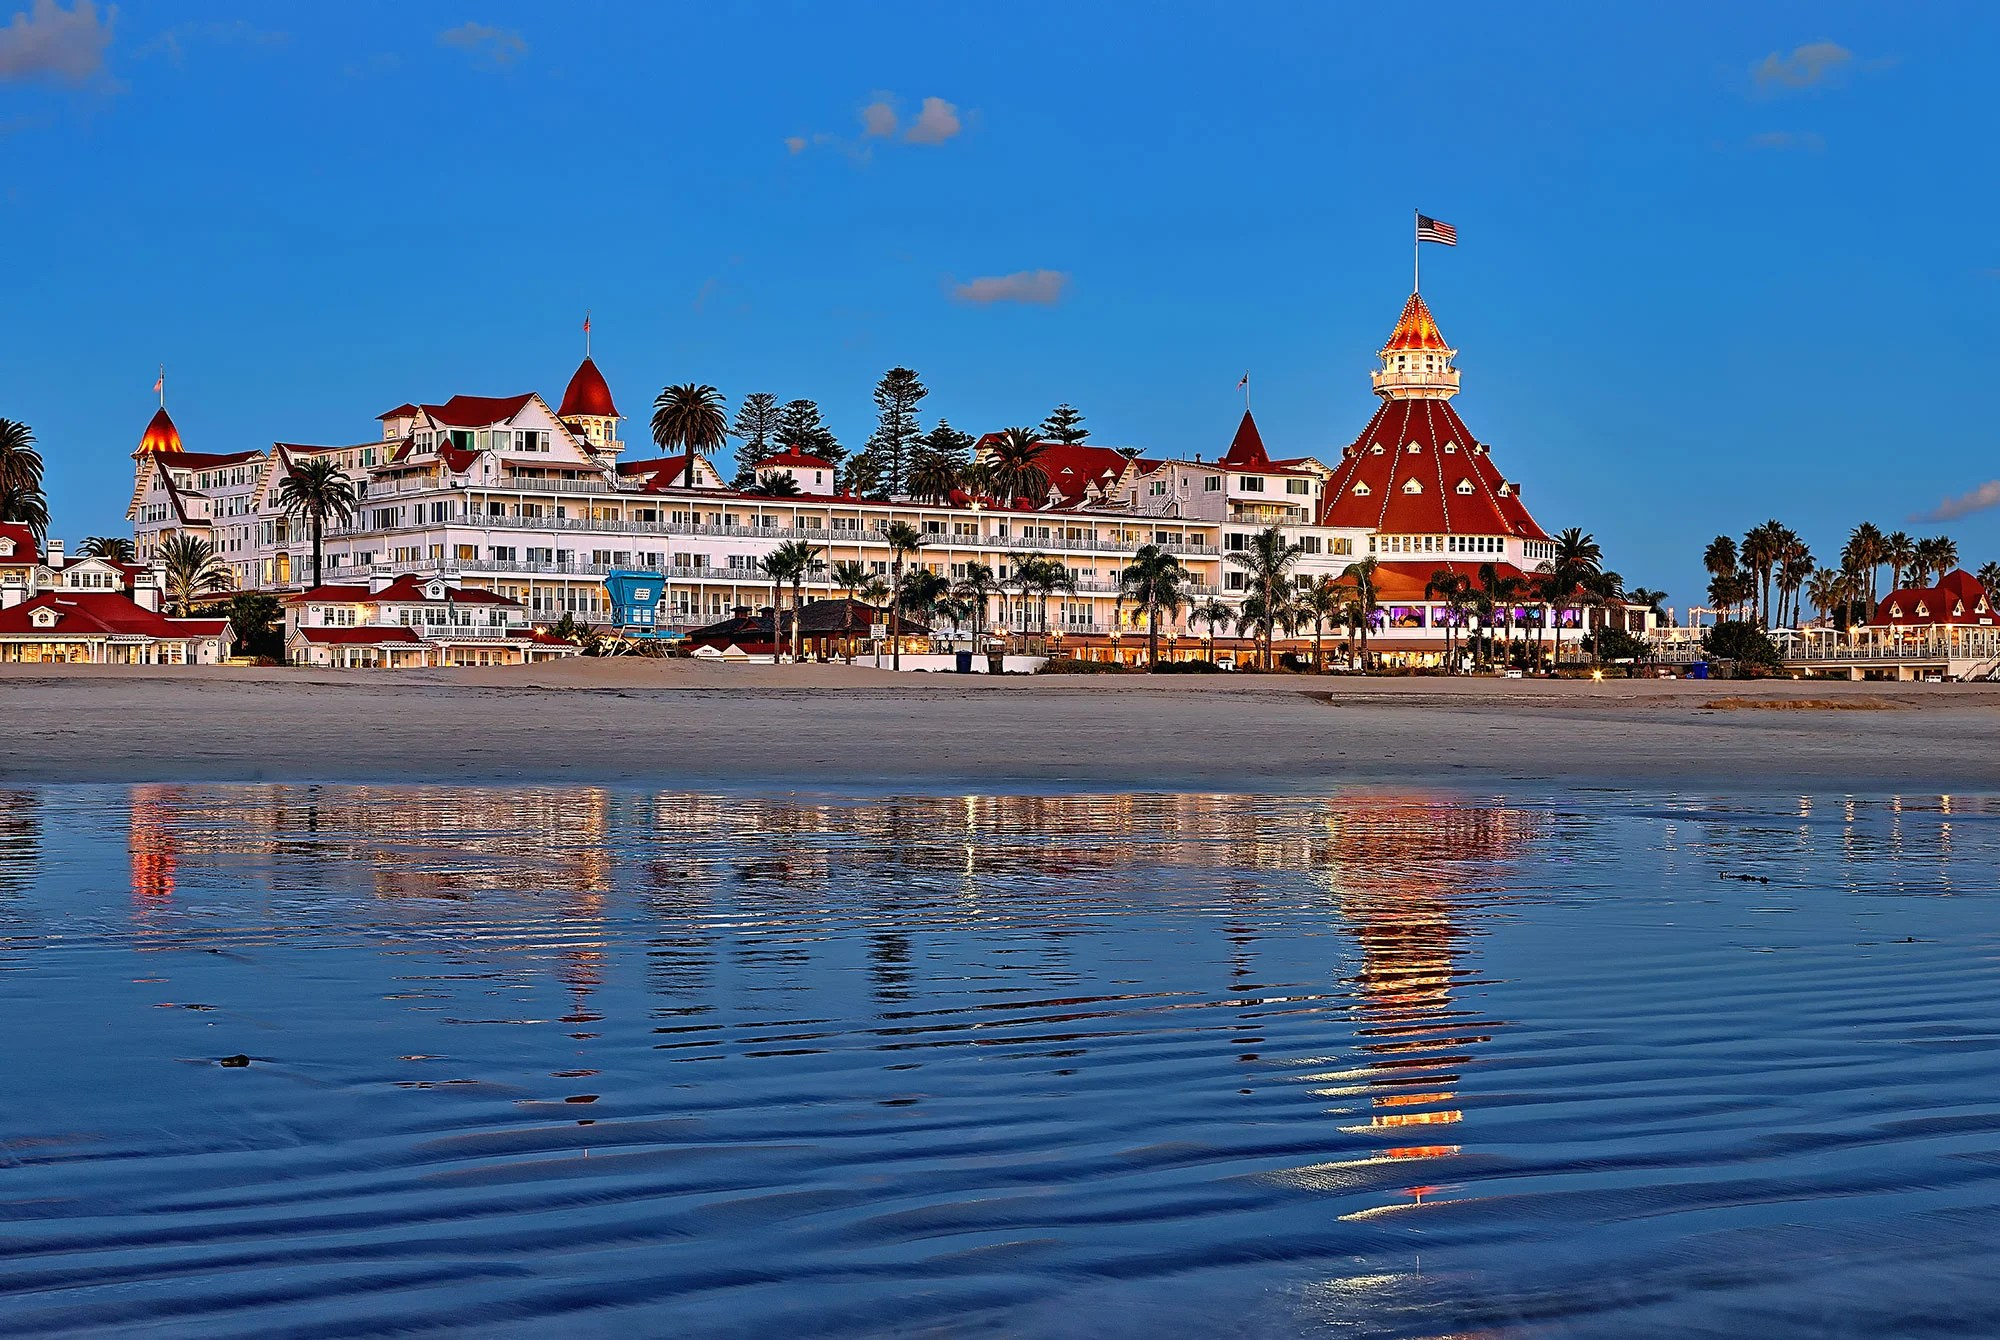 Photo courtesy of the Hotel del Coronado